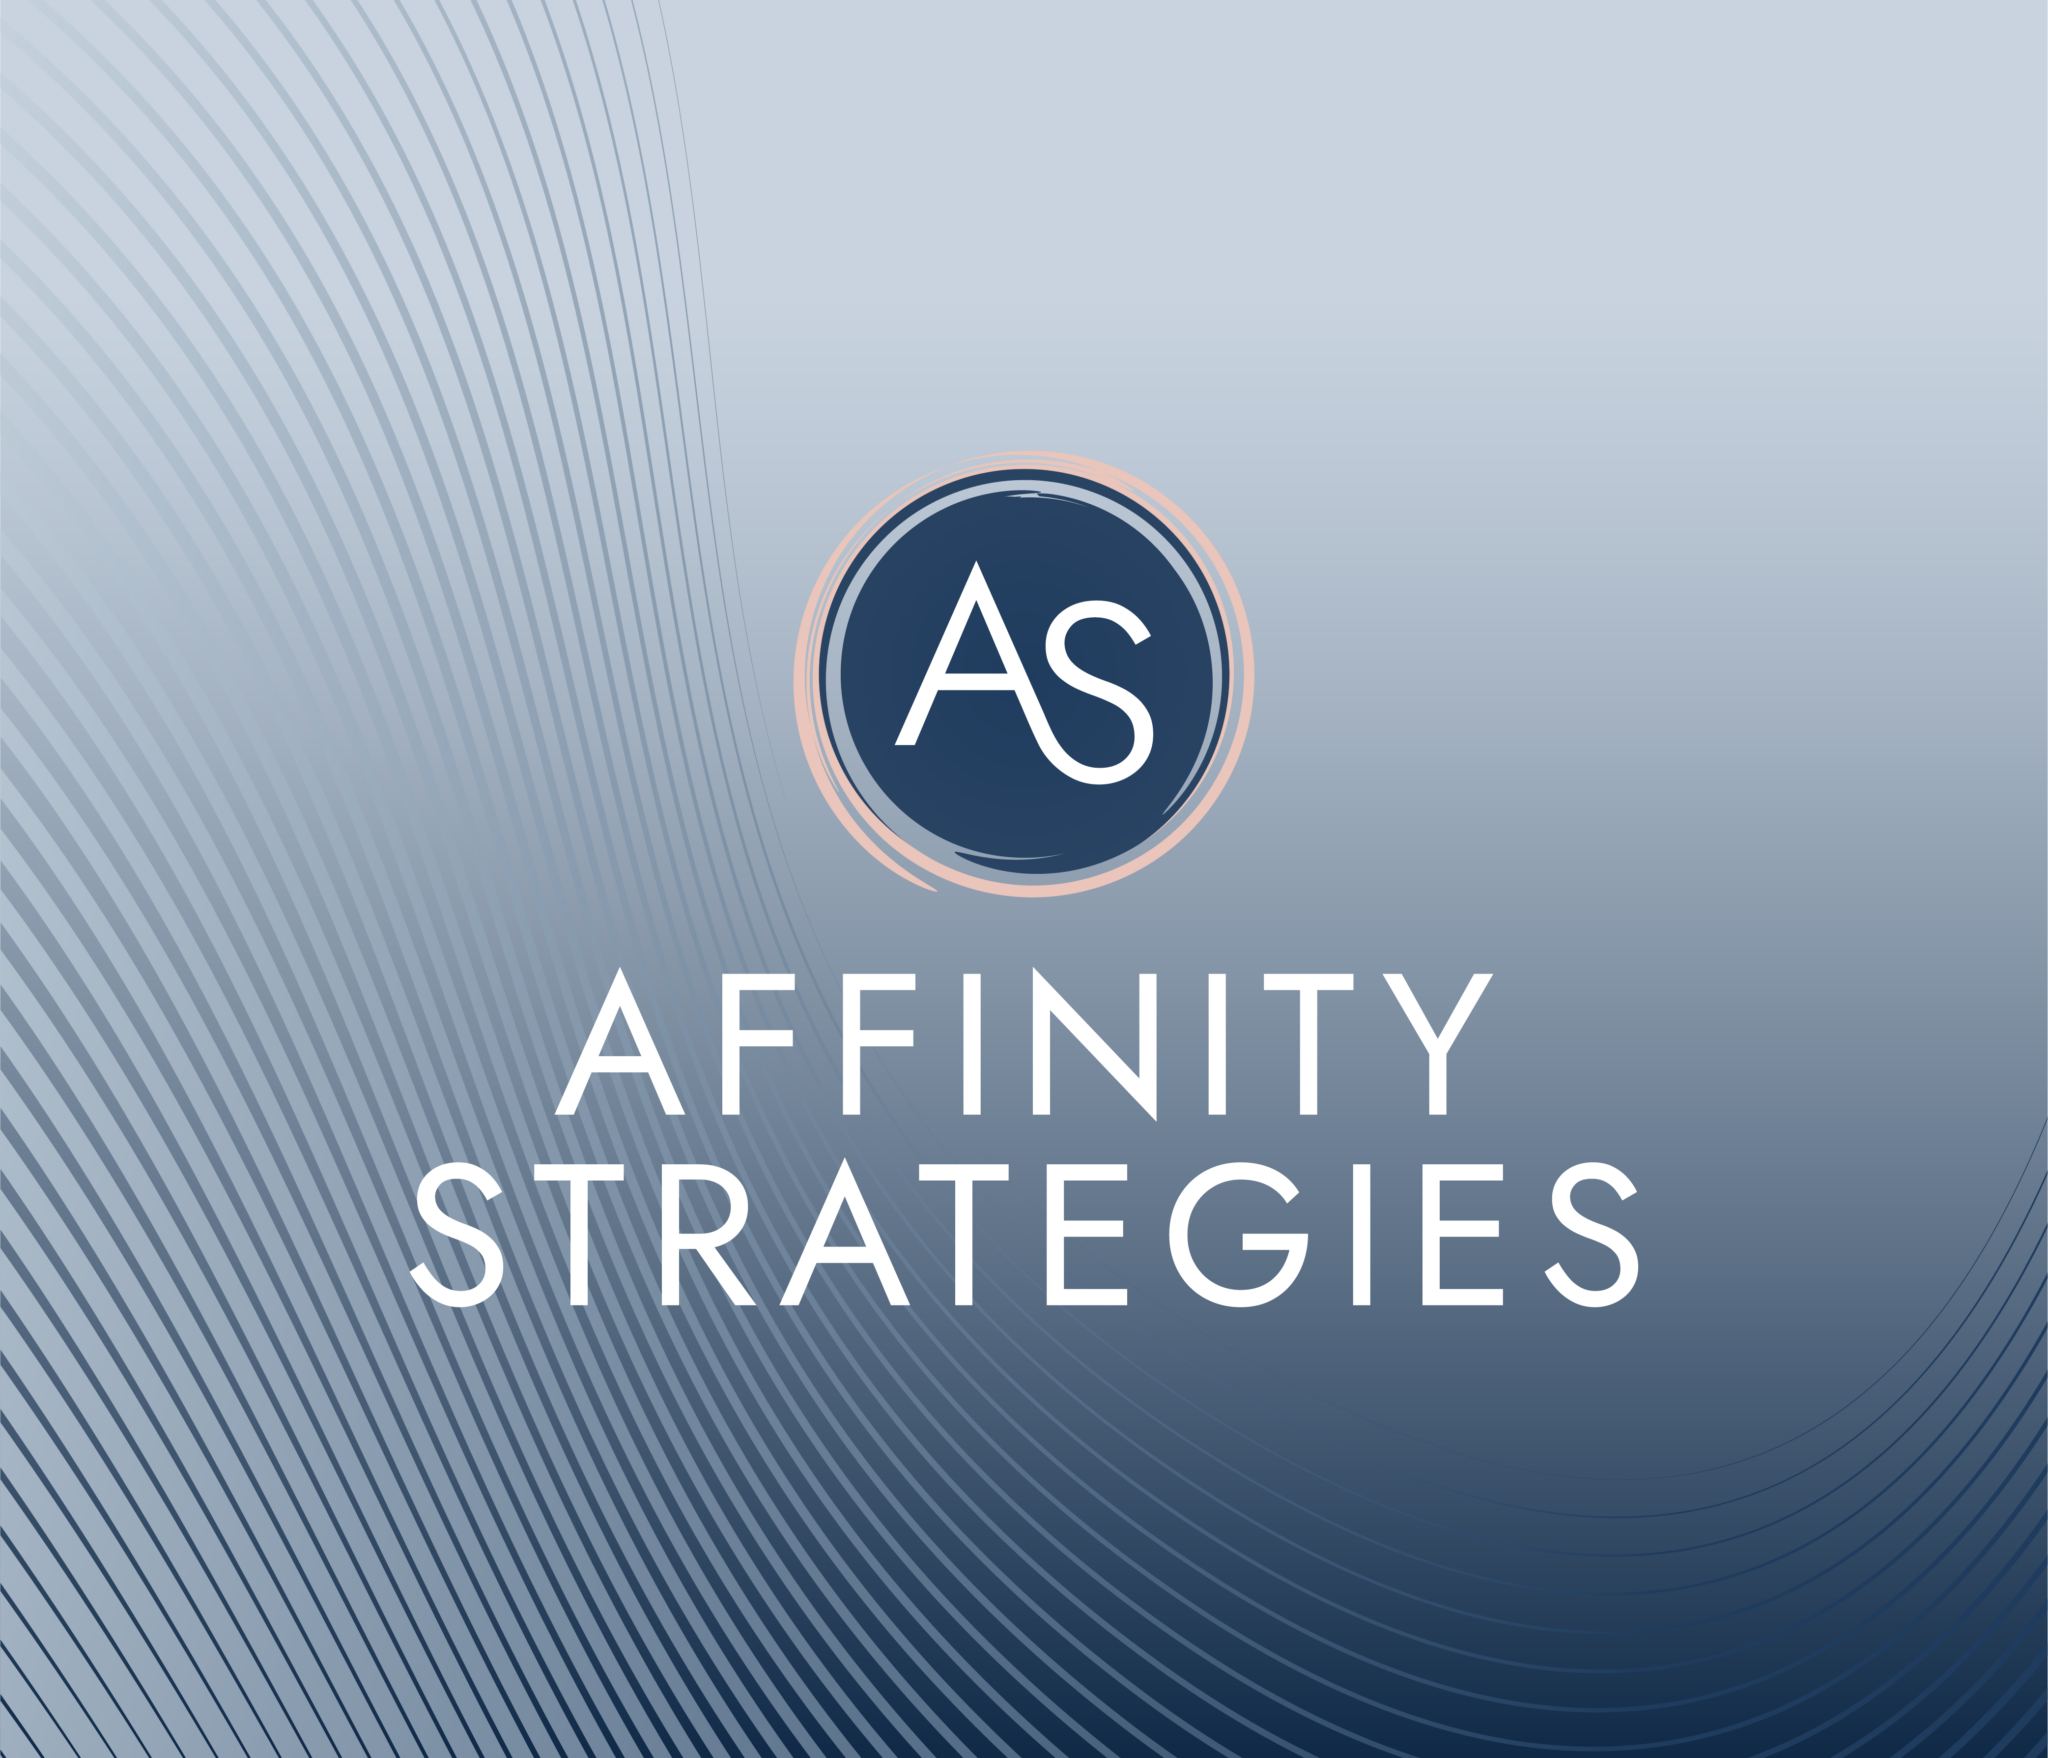 The Affinity Strategies Story